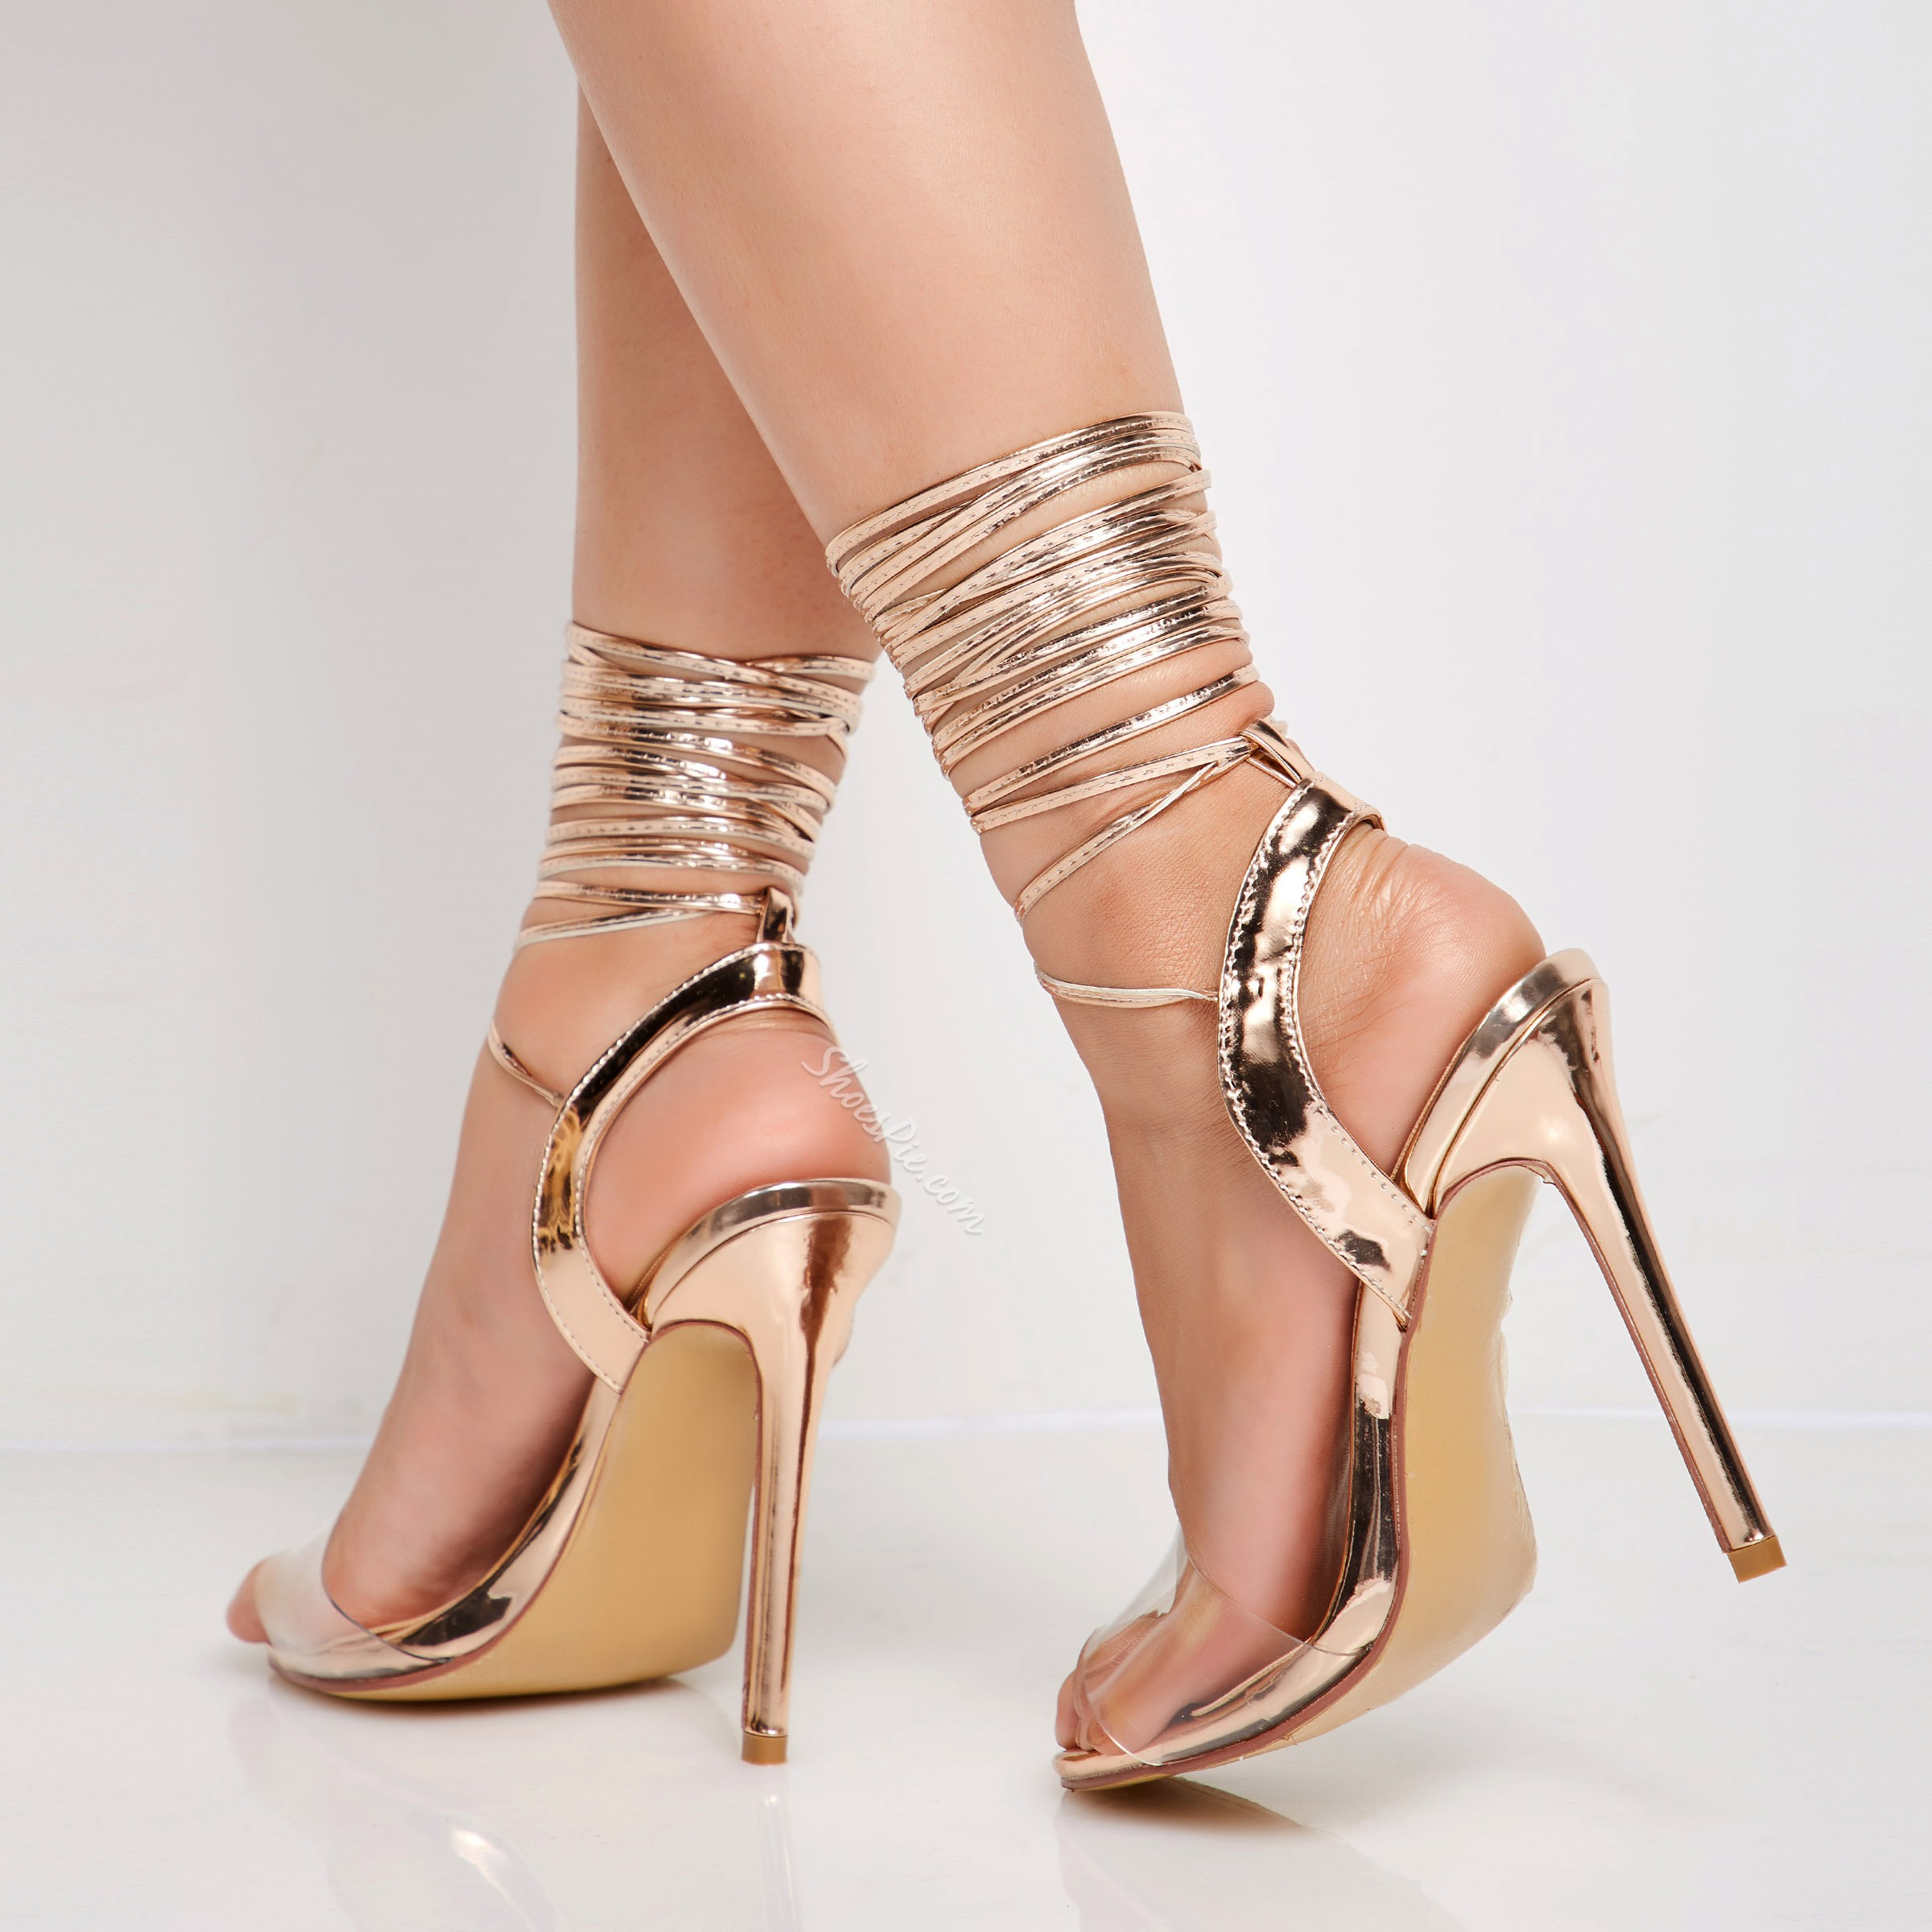 Shoespie Lace-Up Open Toe Gold Stiletto Heel Clear Sandals